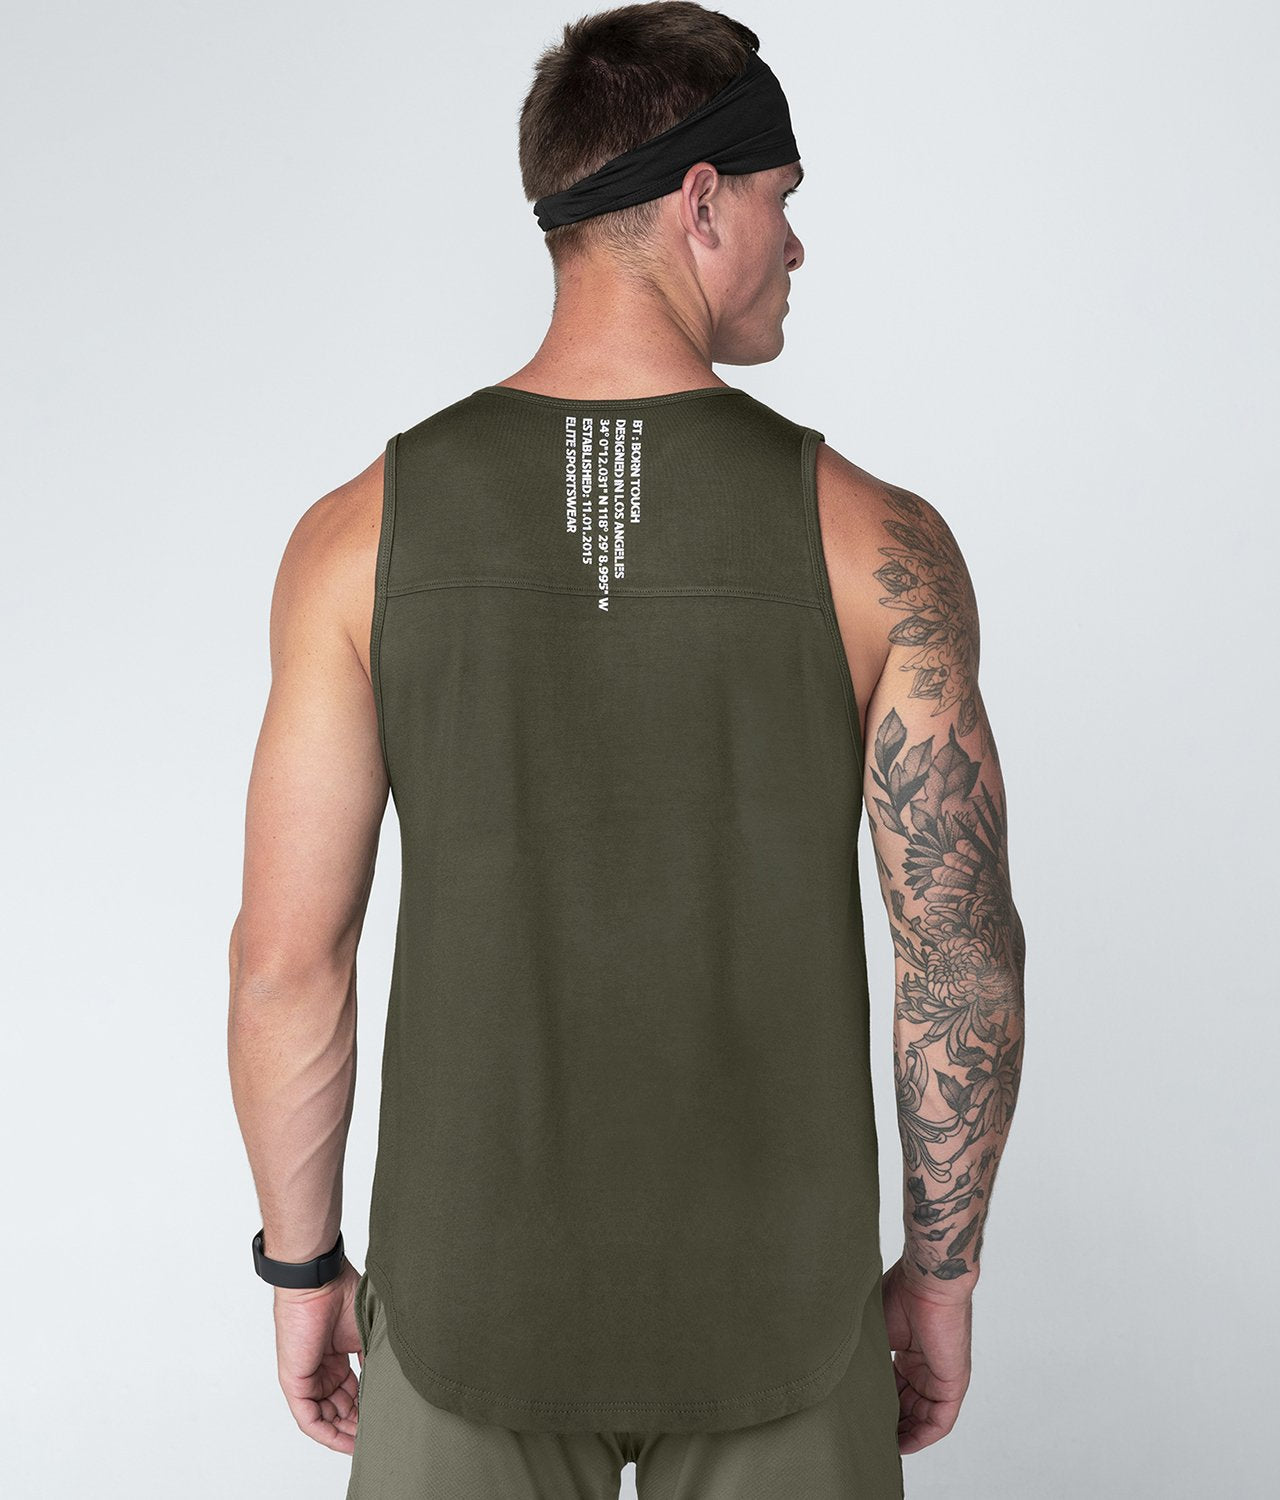 Born Tough United Kingdom Core Fit Stretchable Army Green Gym Workout Tank Top for Men